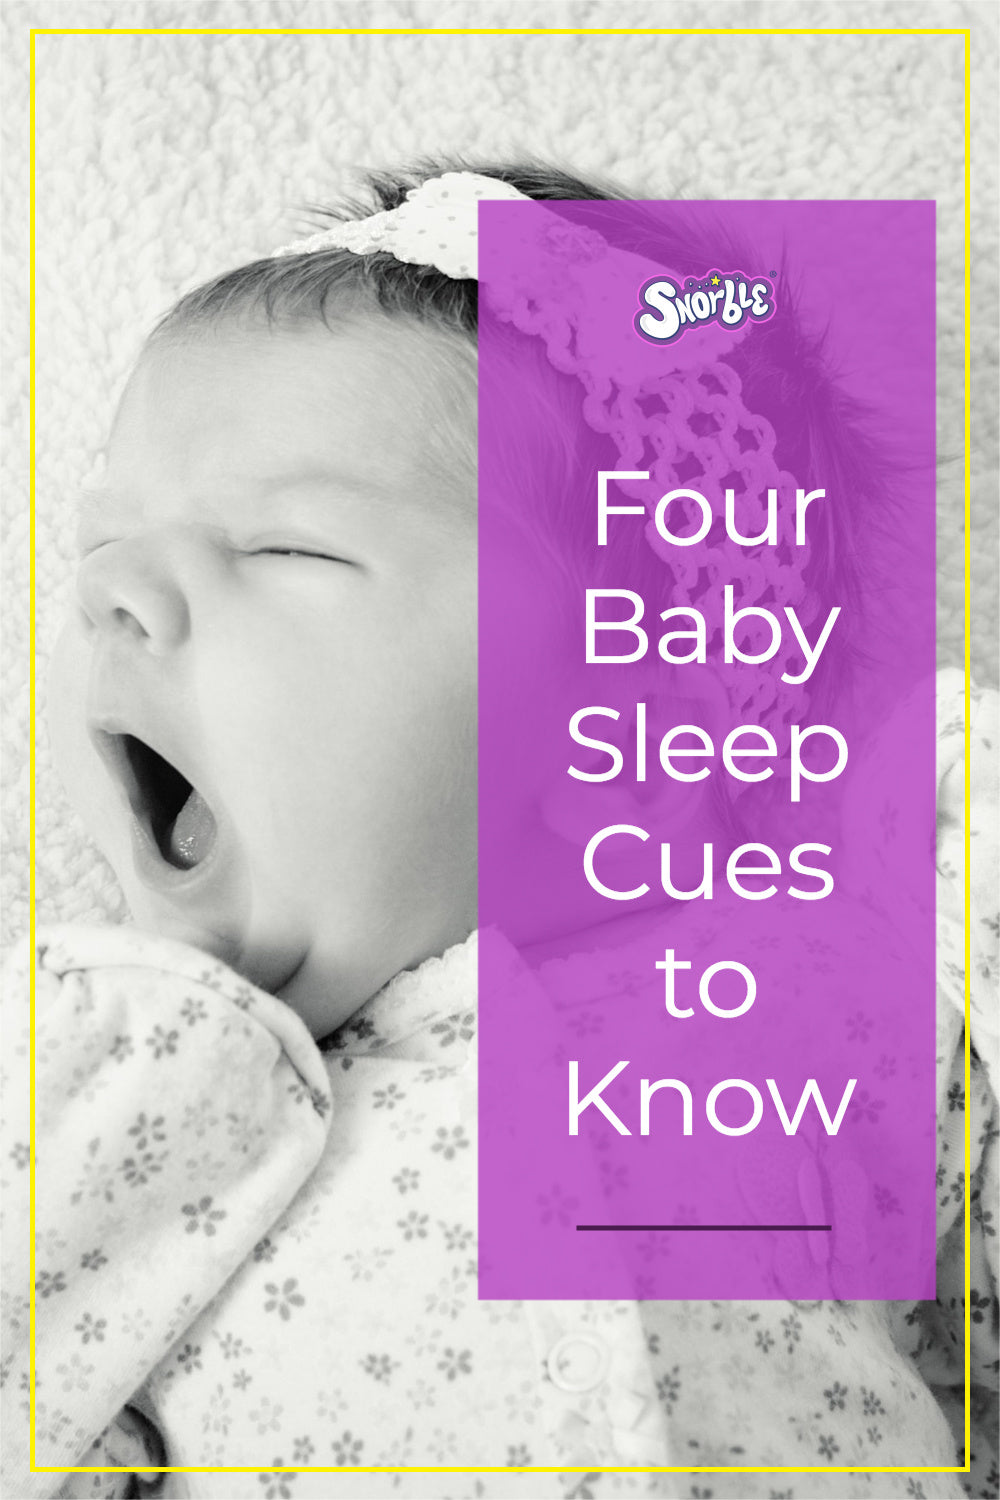 """Image contain a photo of a yawning baby in black and white. On the right-hand side, there is a vertical purple box with white text that says """"Four Baby Sleep Cutes to Know"""". Above the text, there is a logo that says """"Snorble"""" in a stylized font. The photo has a thin yellow border around it."""